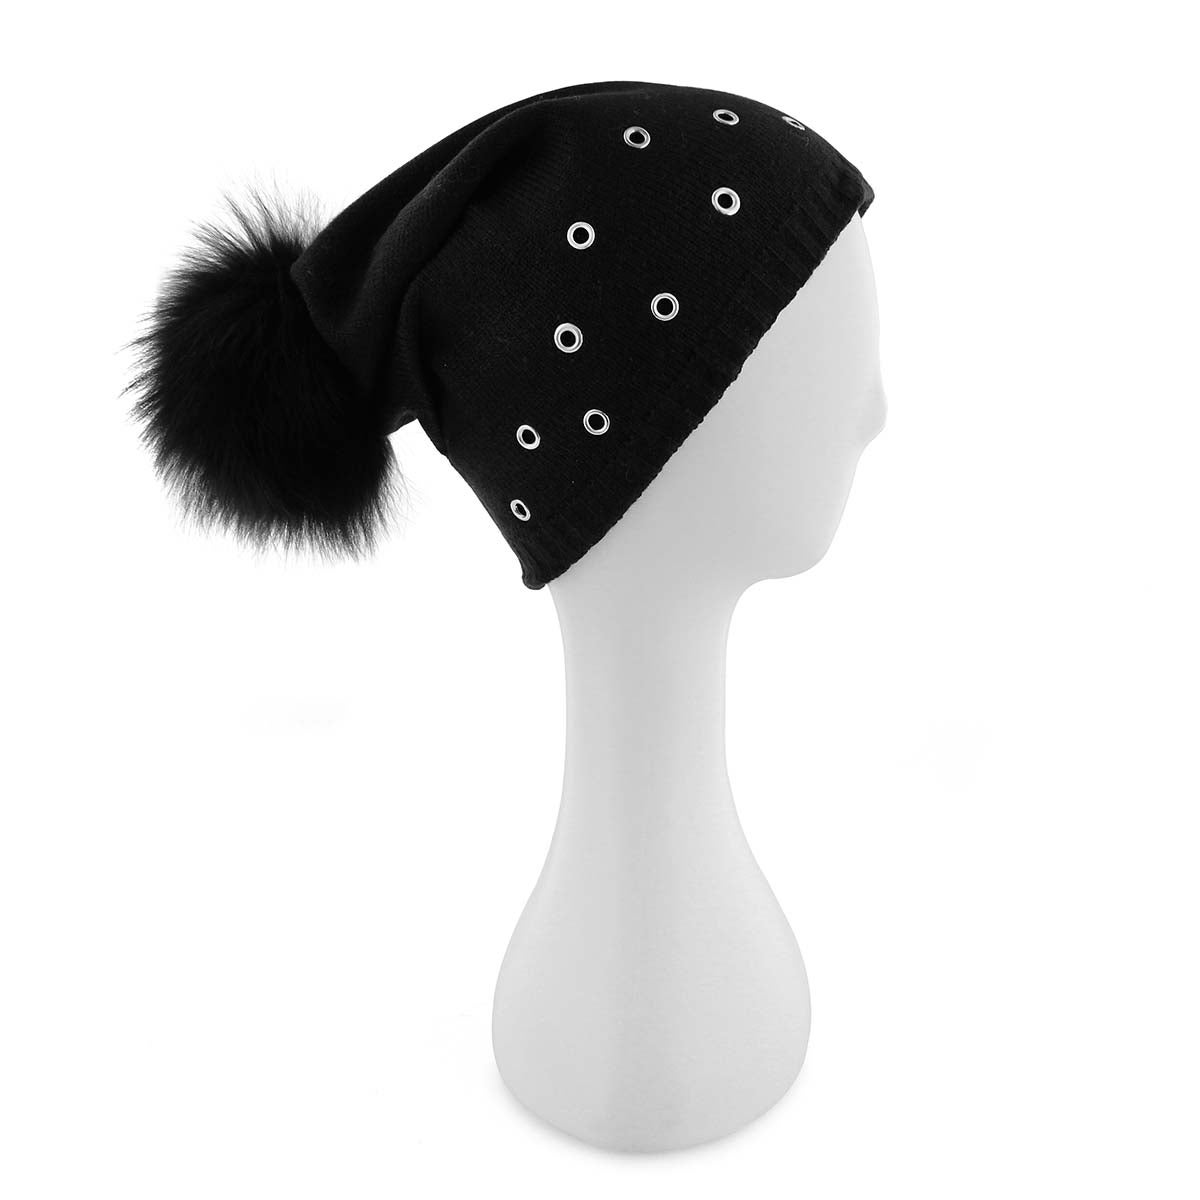 Lds Fur Pom w/ Grommets black hat